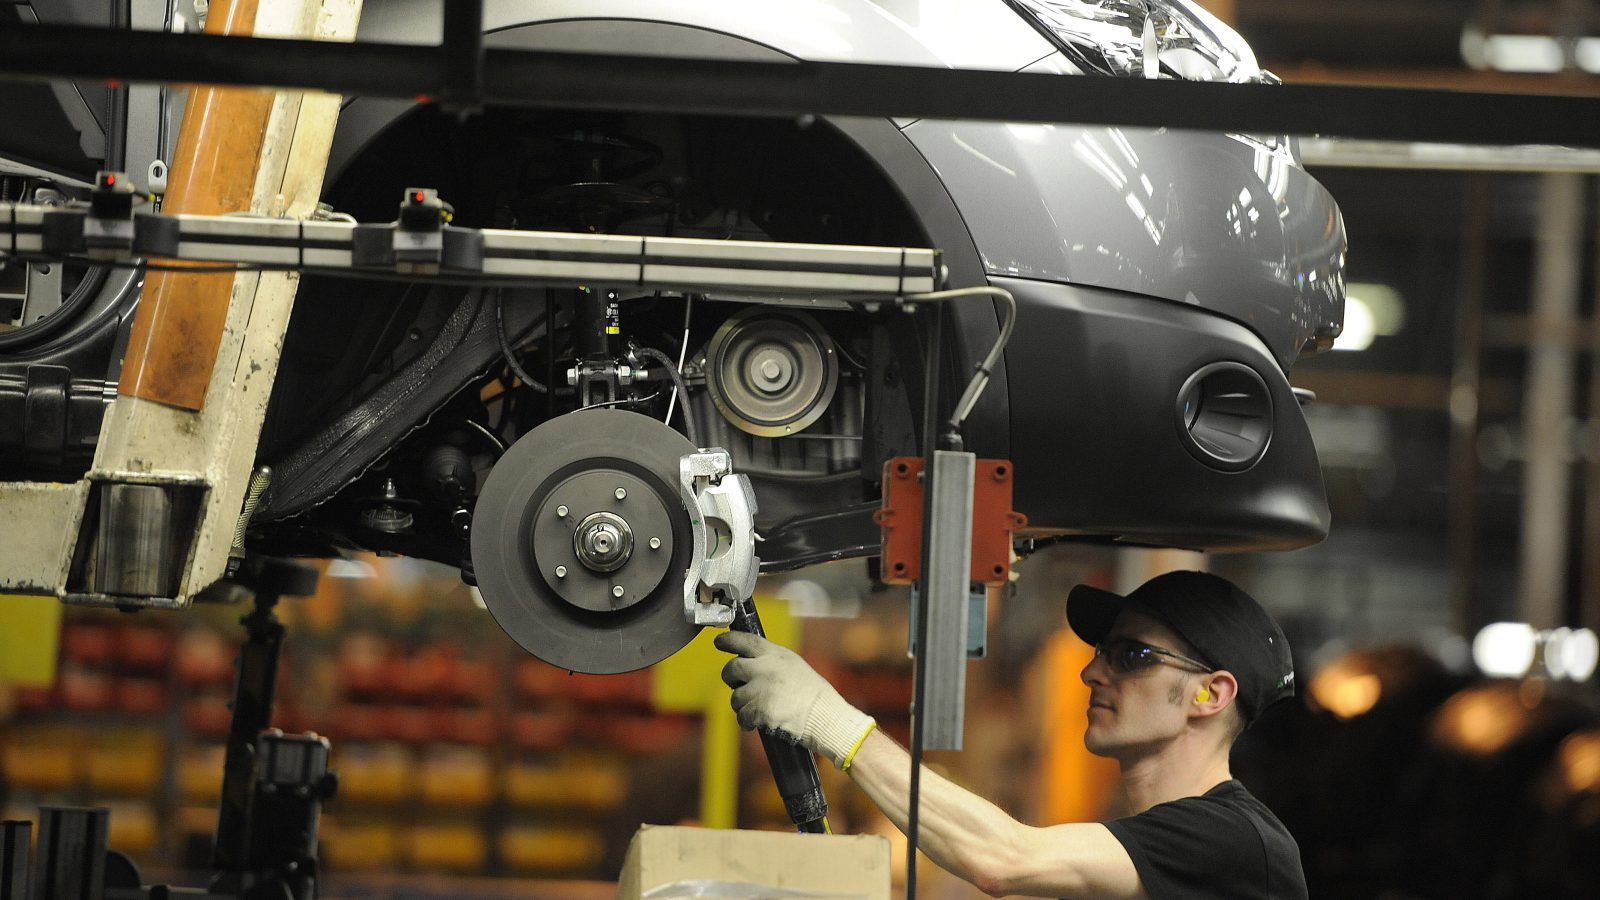 A Nissan technician prepares a Qashqai car at the company's plant in Sunderland, UK.